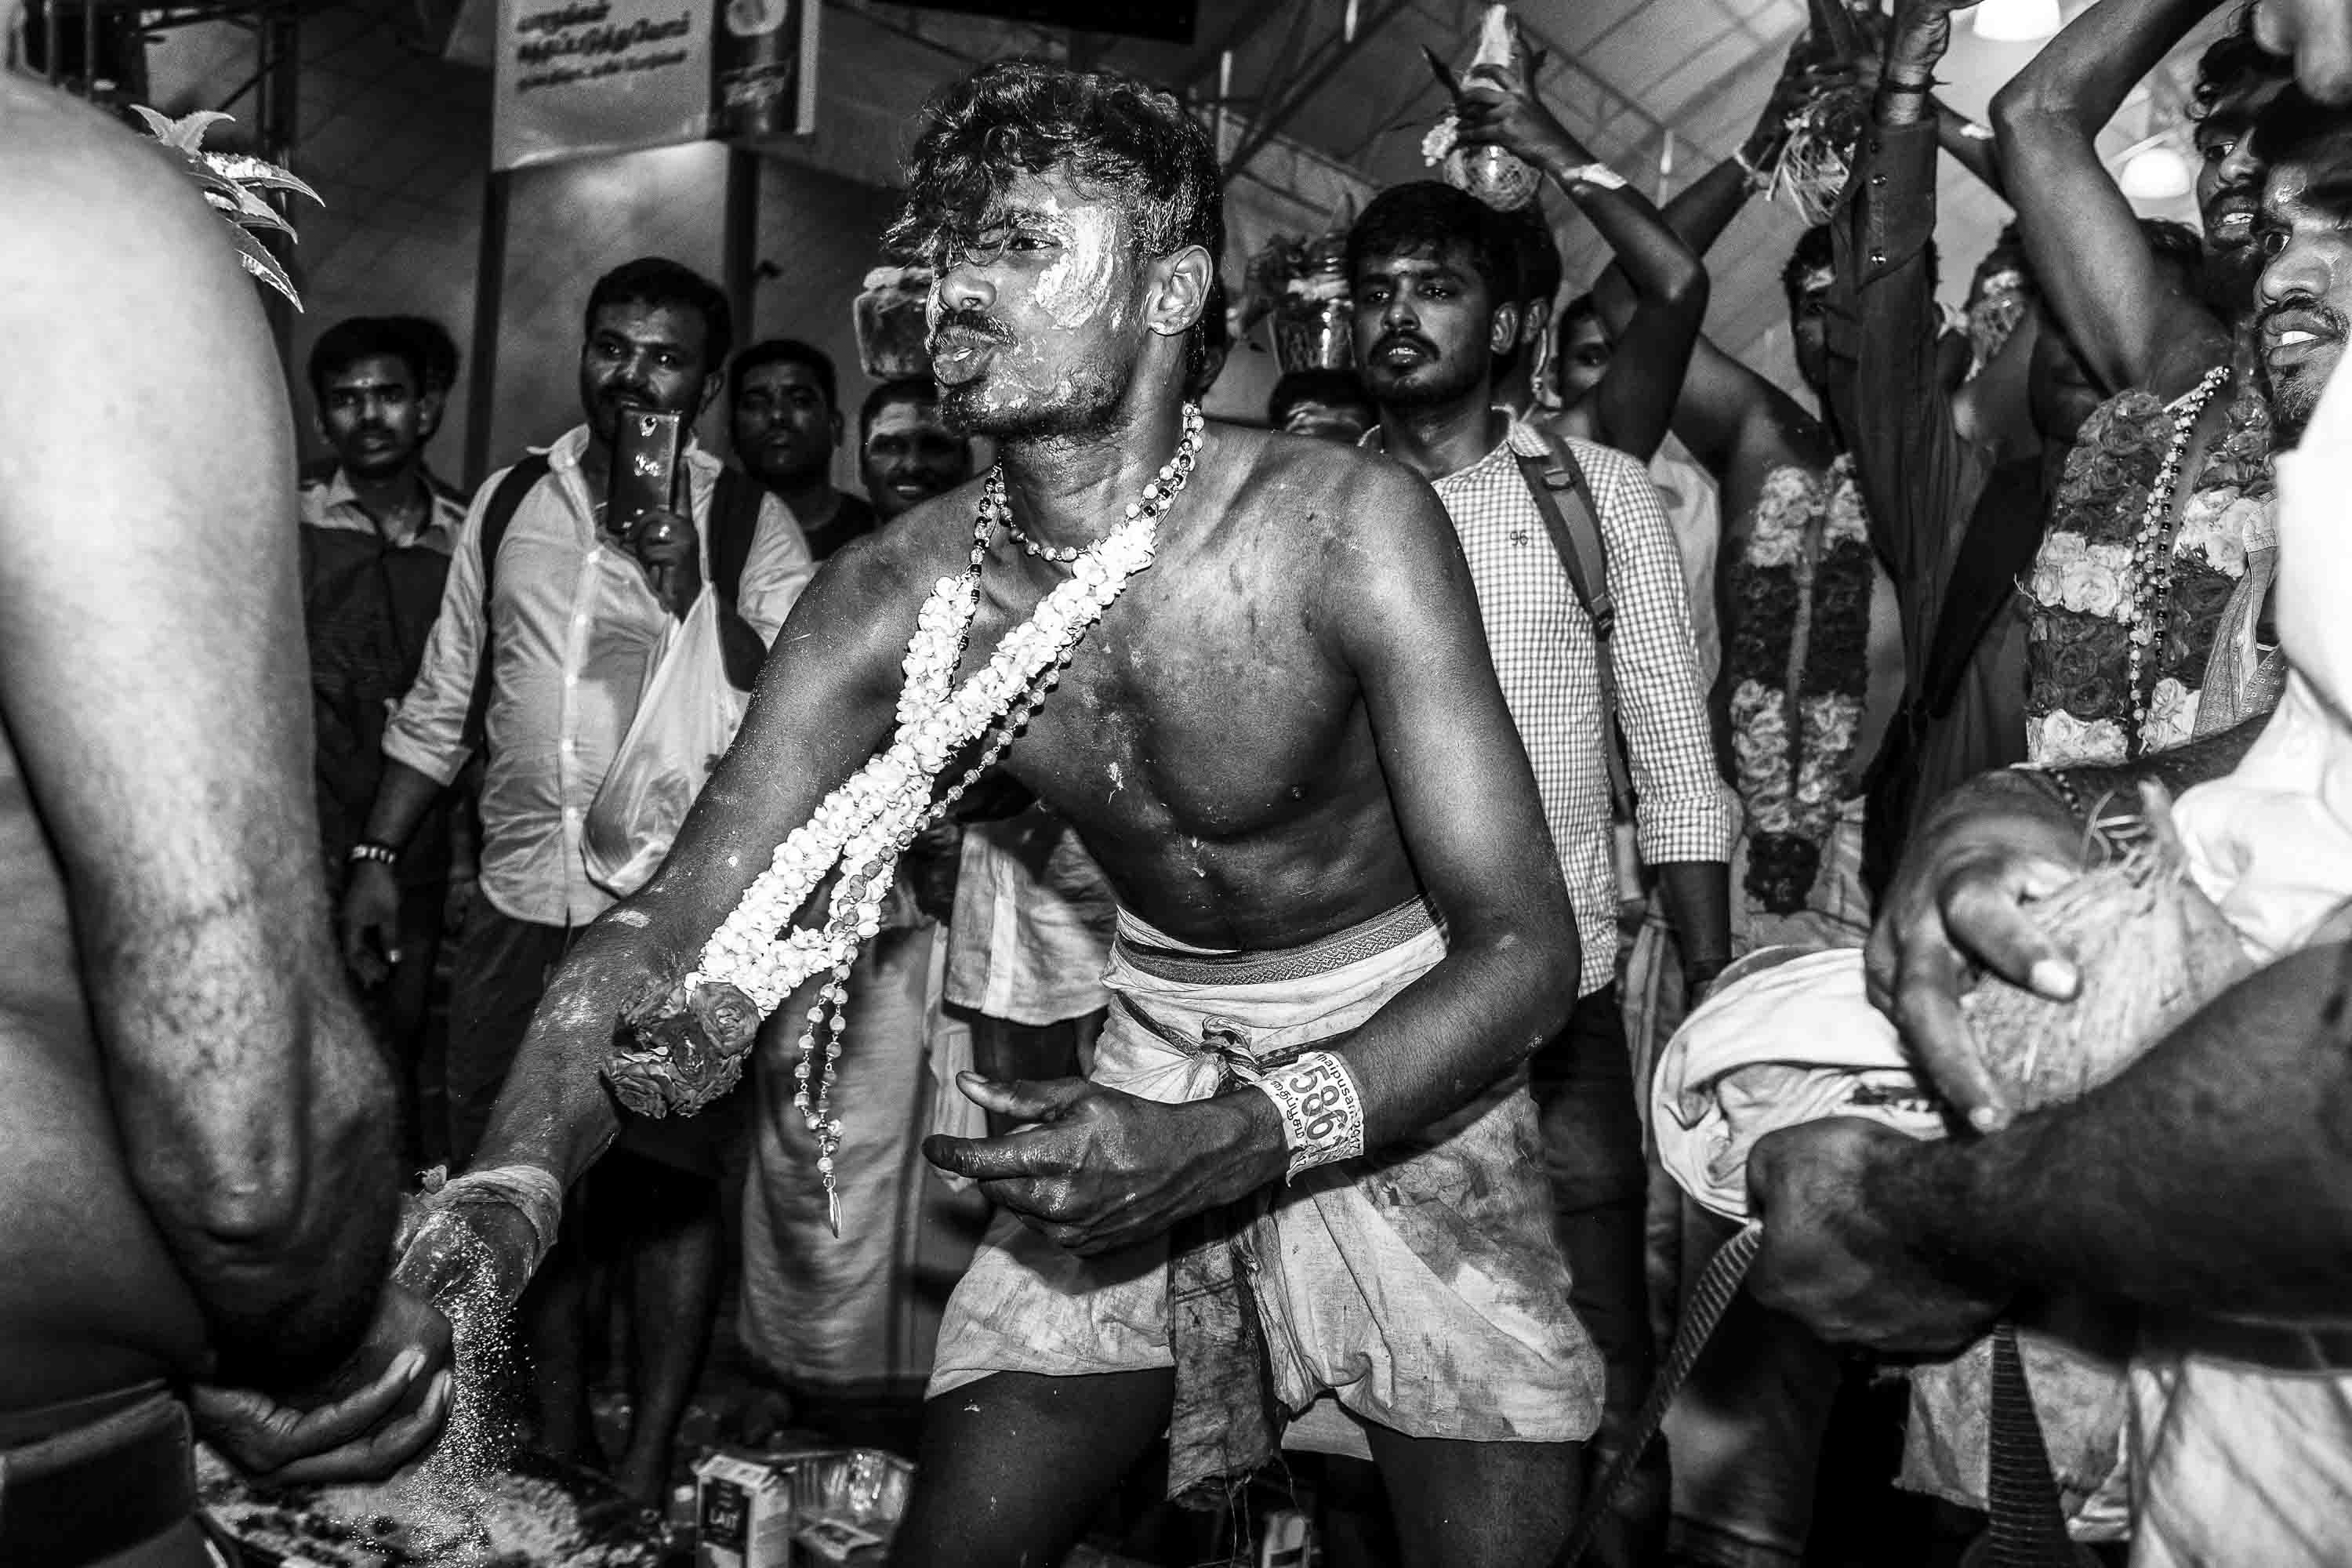 dancing ceremony Little India Thaipusam Festival hindu Singapore photography jose jeuland documentary event